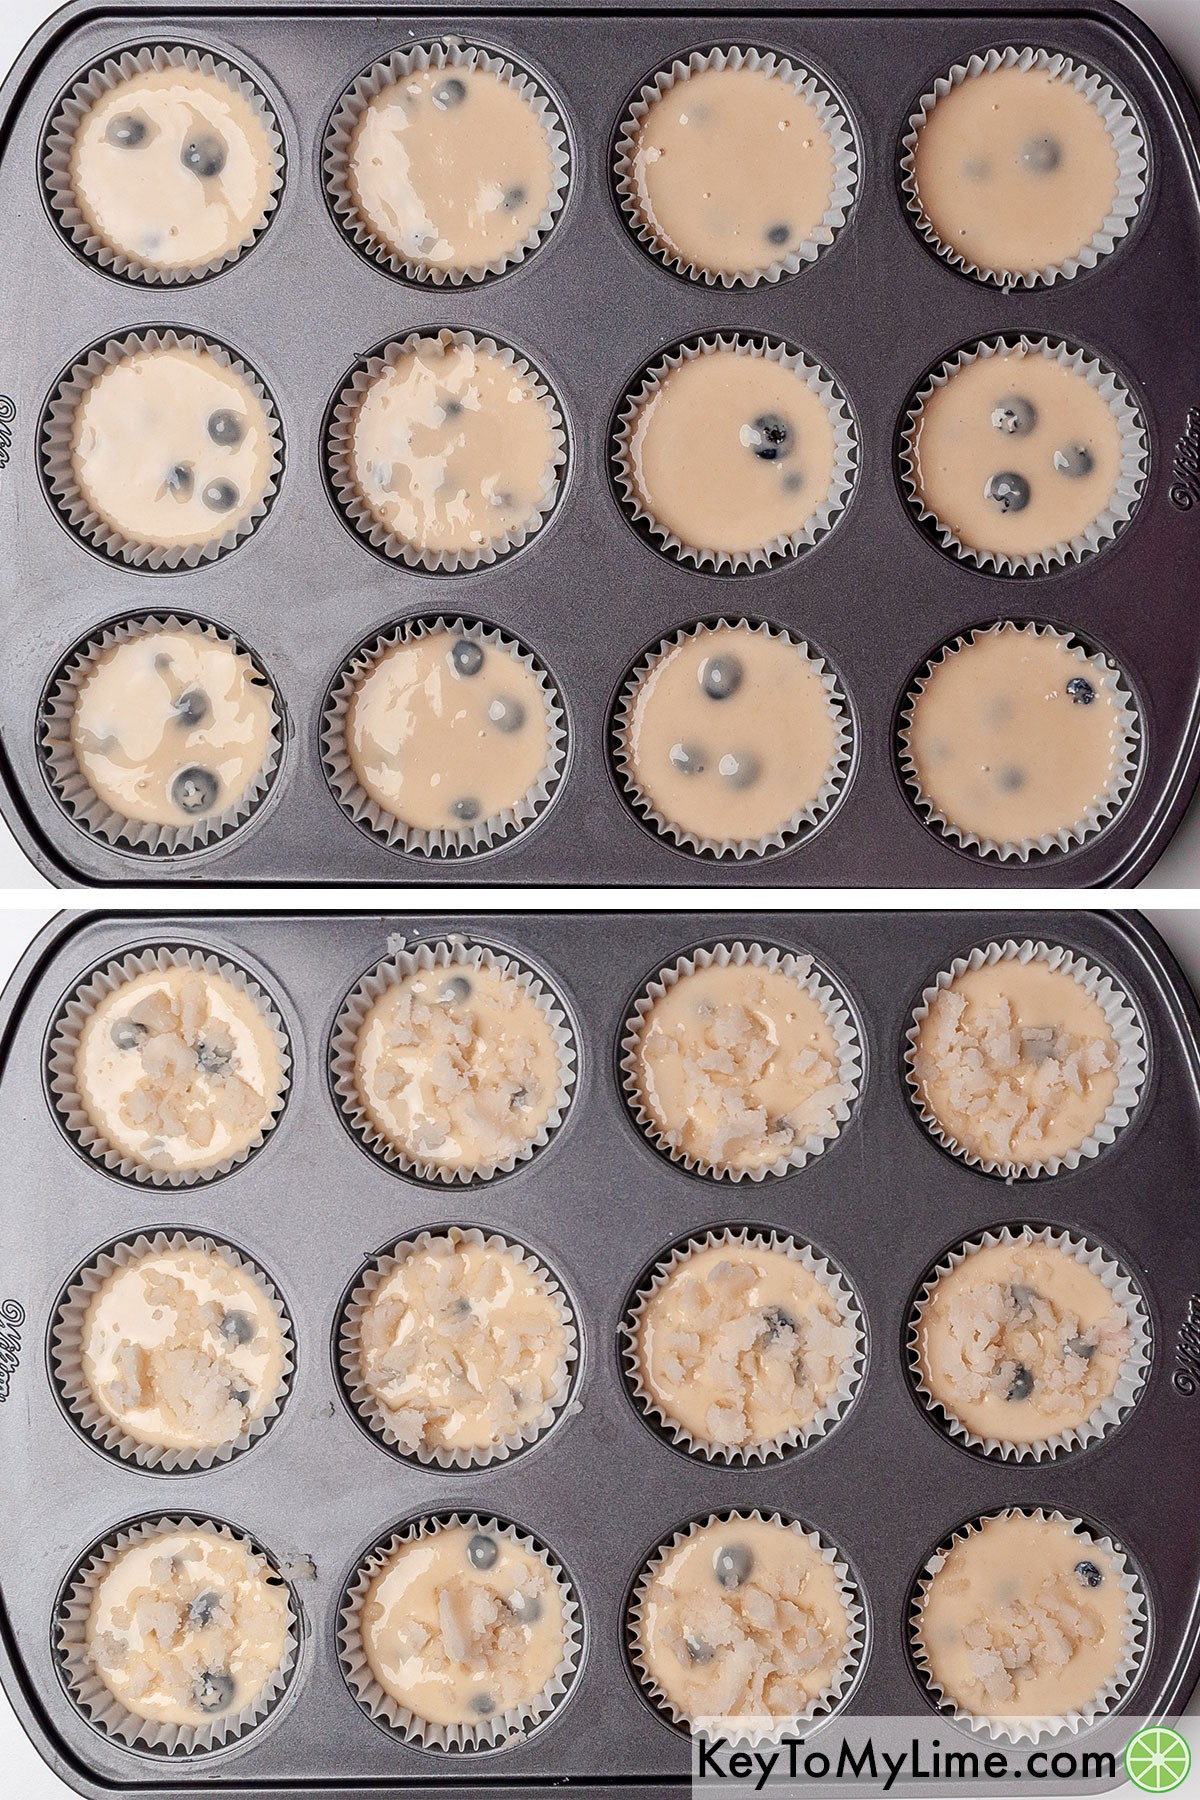 Bisquick muffin batter in a baking tin before and after adding the streusel topping.